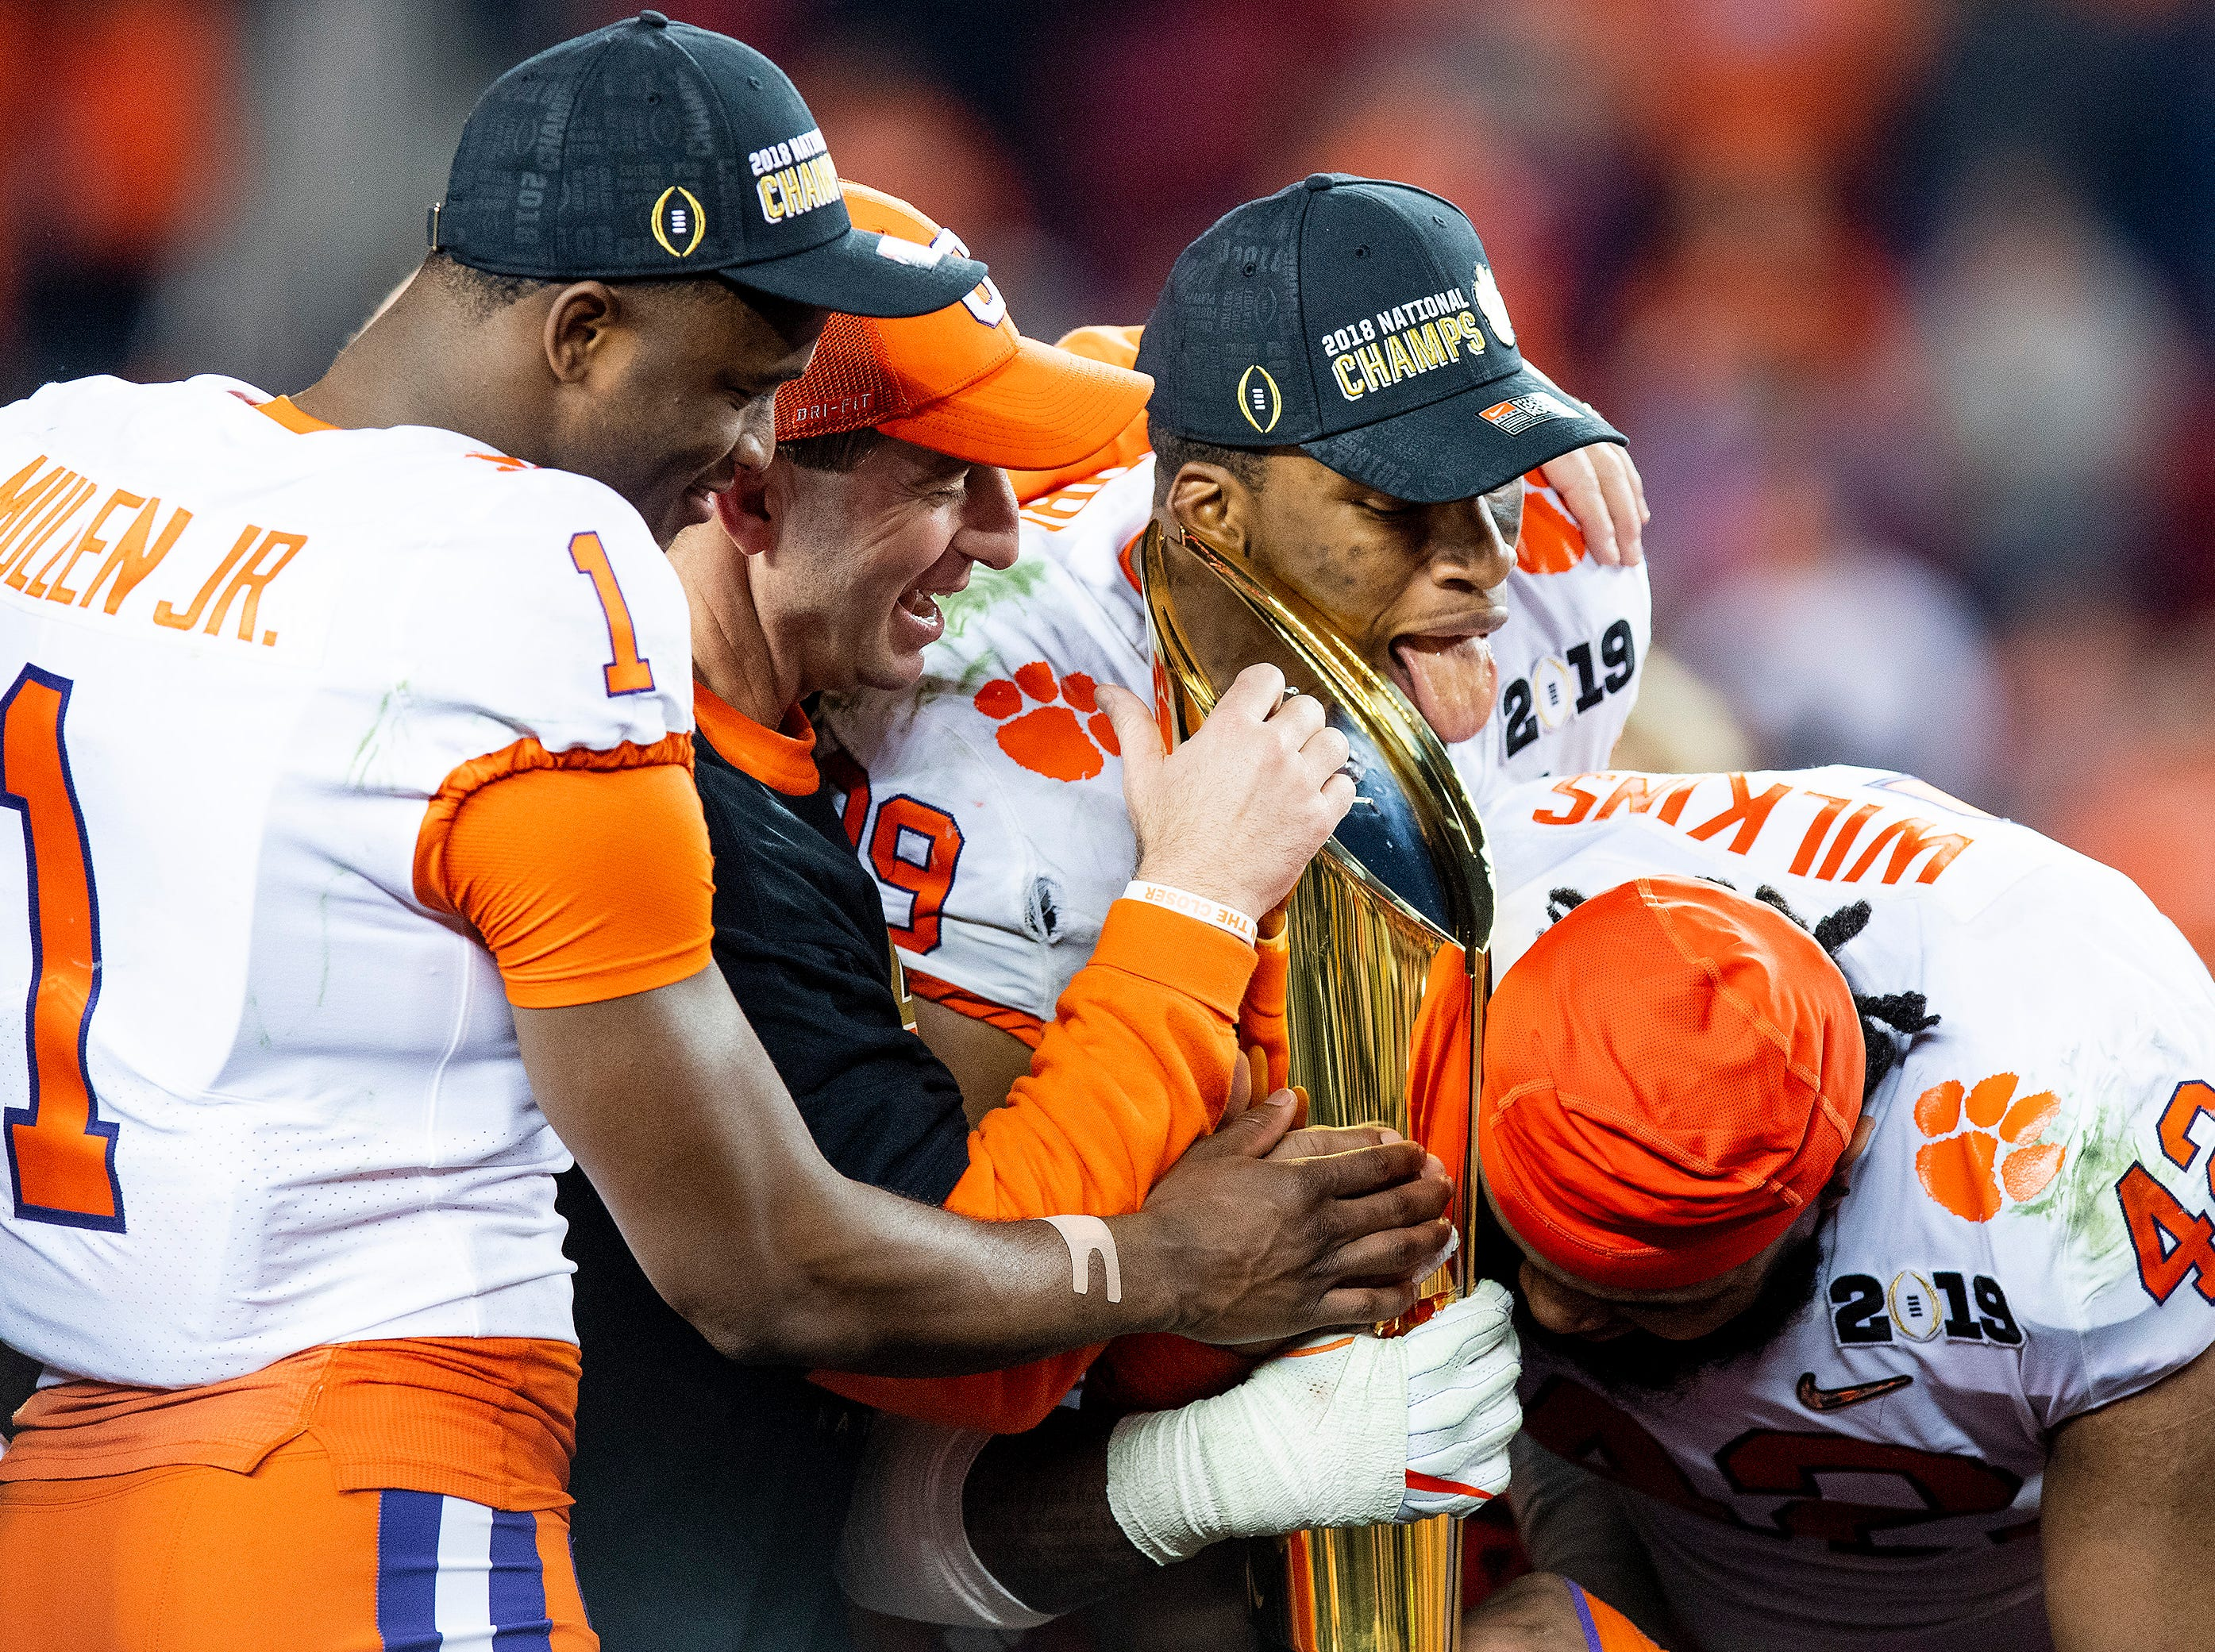 Clemson cornerback Trayvon Mullen (1), head coach Dabo Swinney , defensive end Clelin Ferrell (99) and defensive tackle Christian Wilkins (42) claim their trophy after defeating Alabama in the College Football Playoff National Championship game at Levi's Stadium in Santa Clara, Ca., on Monday January 7, 2019.